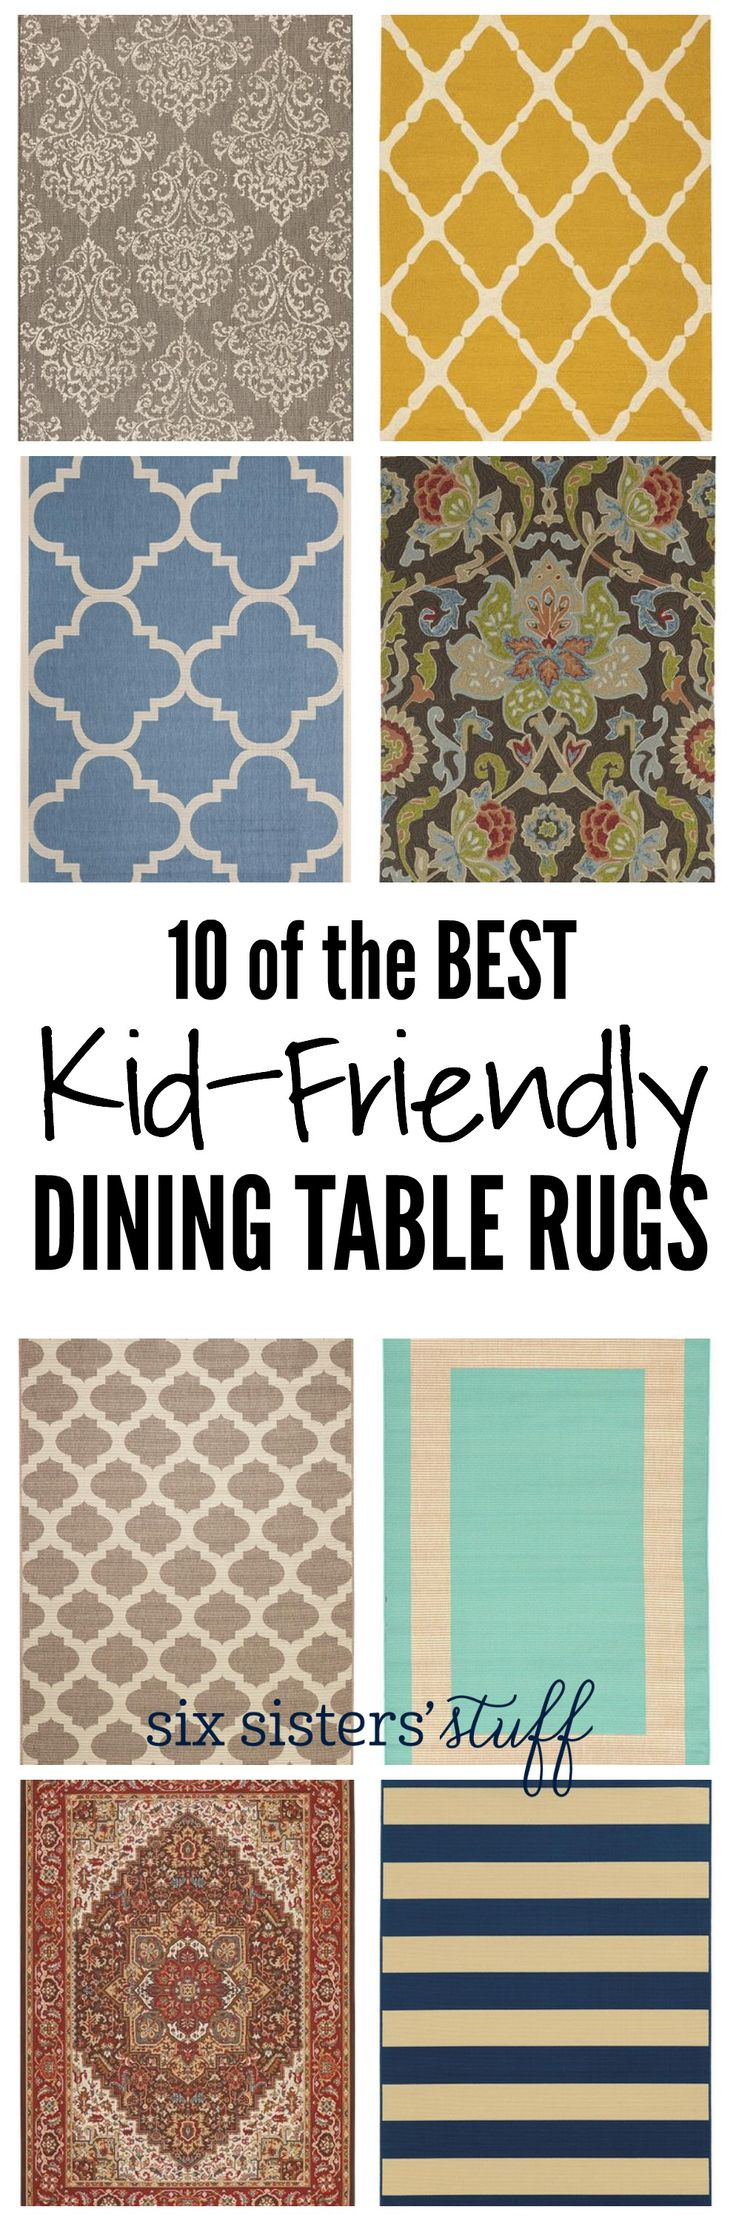 10 of the BEST Kid-Friendly Dining Table Rugs on SixSistersStuff.com